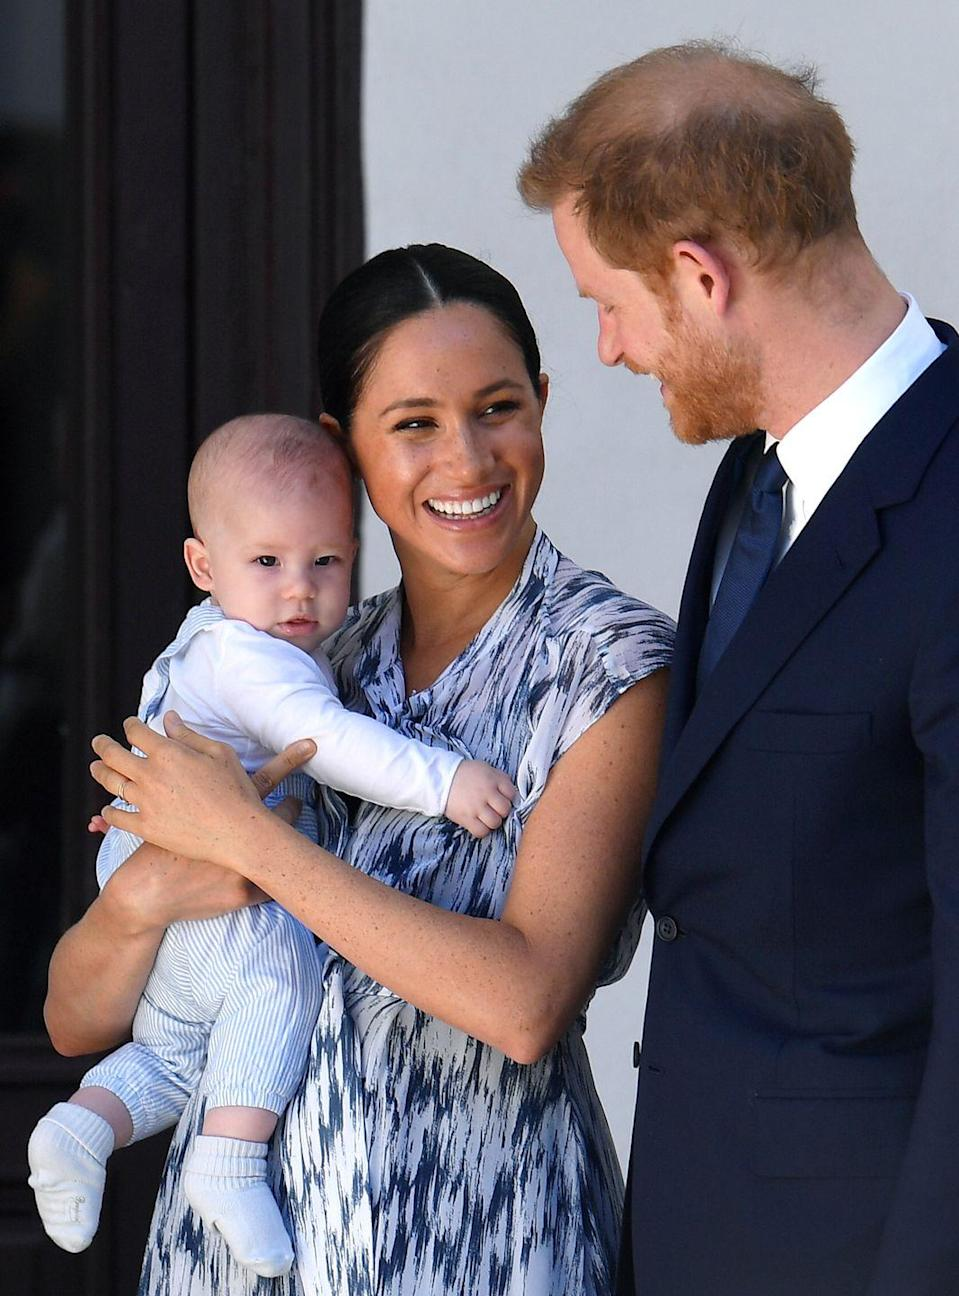 Prince Harry and Meghan Markle Were Super-Close to Giving Archie Harrison a Different Name